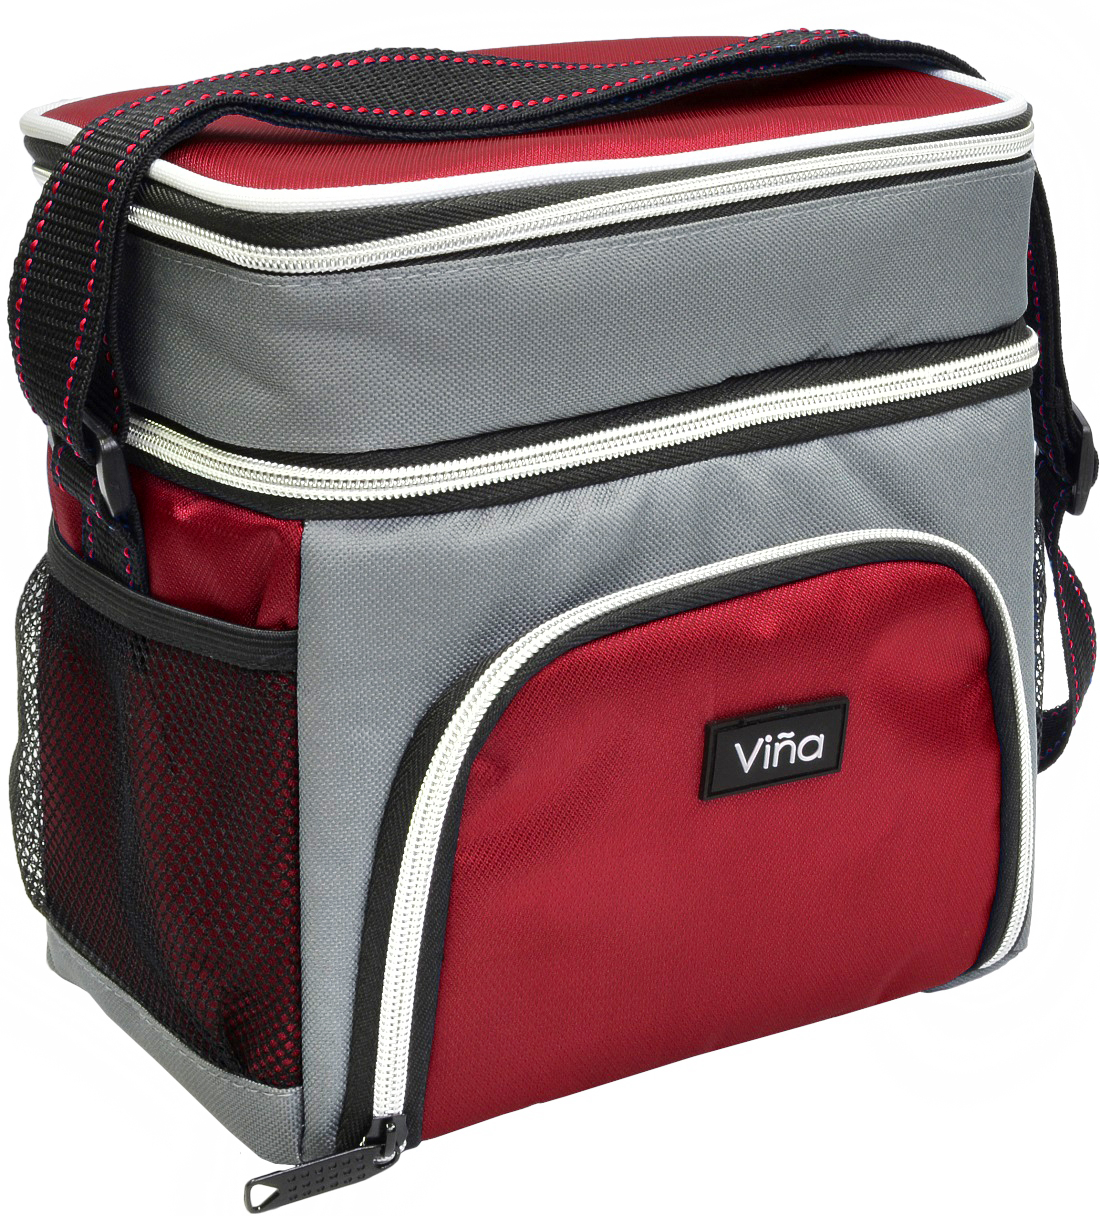 Insulated Lunch Bag Cooler Bag Snack Bag with adjustable shoulder straps Lunchboxes & Bags